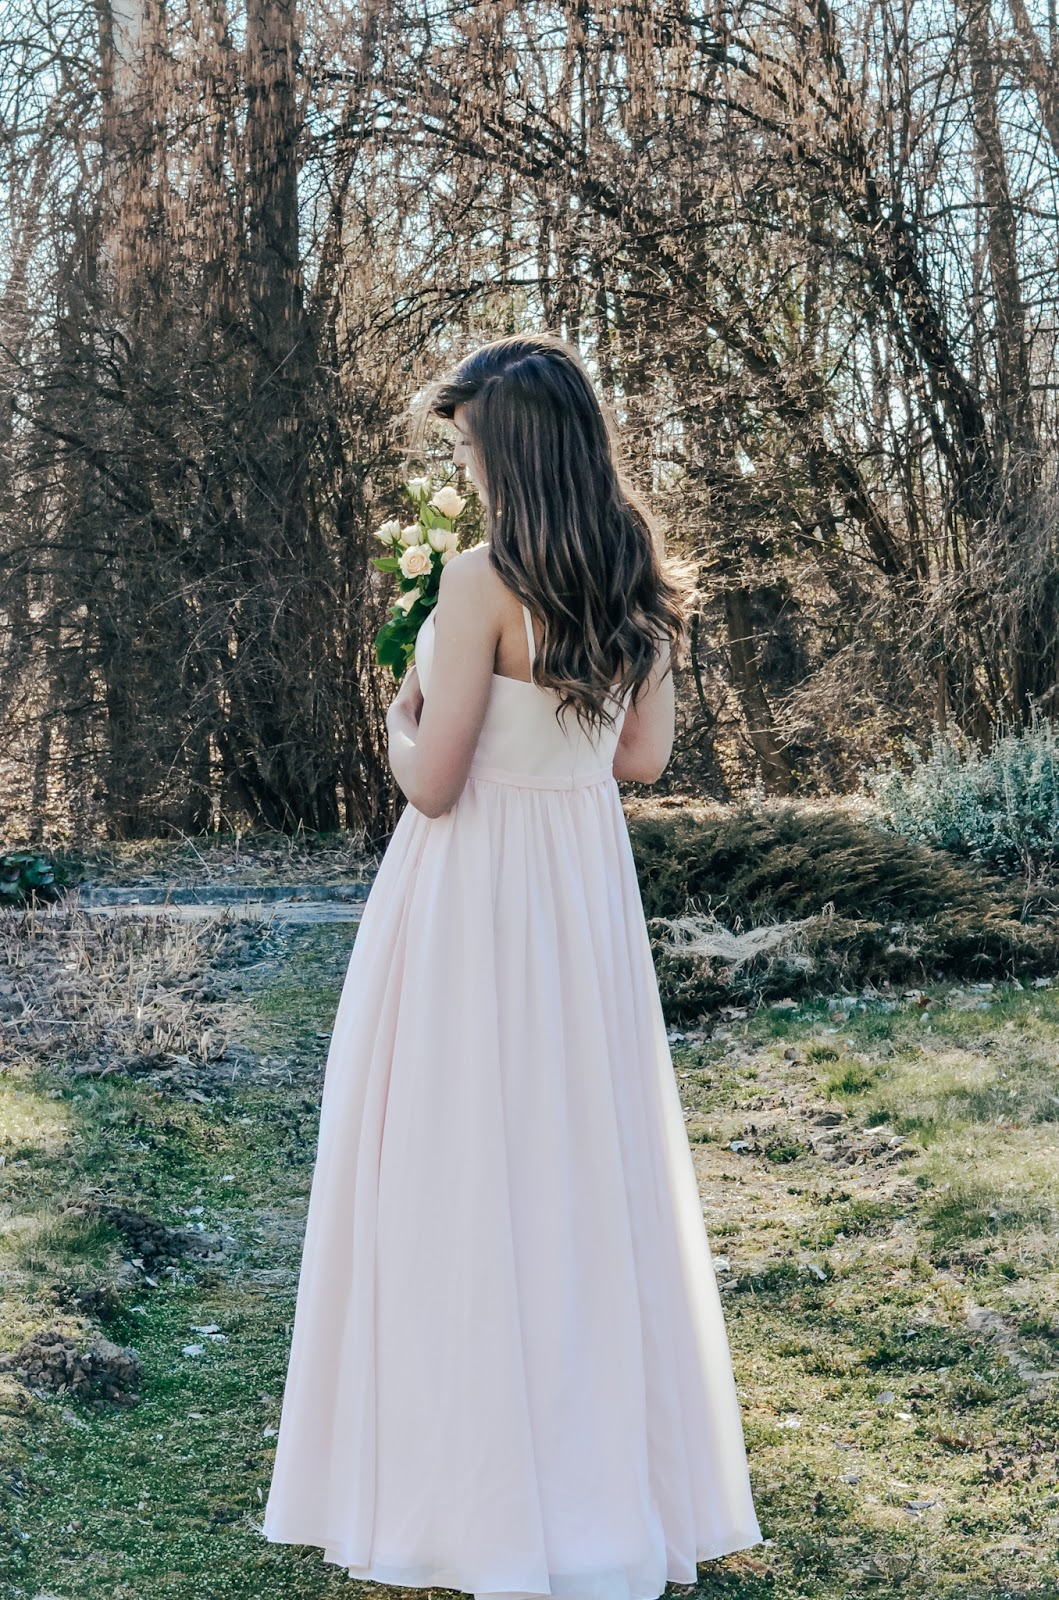 like a princess| PINK ROSE DRESS @JJSHOUSE